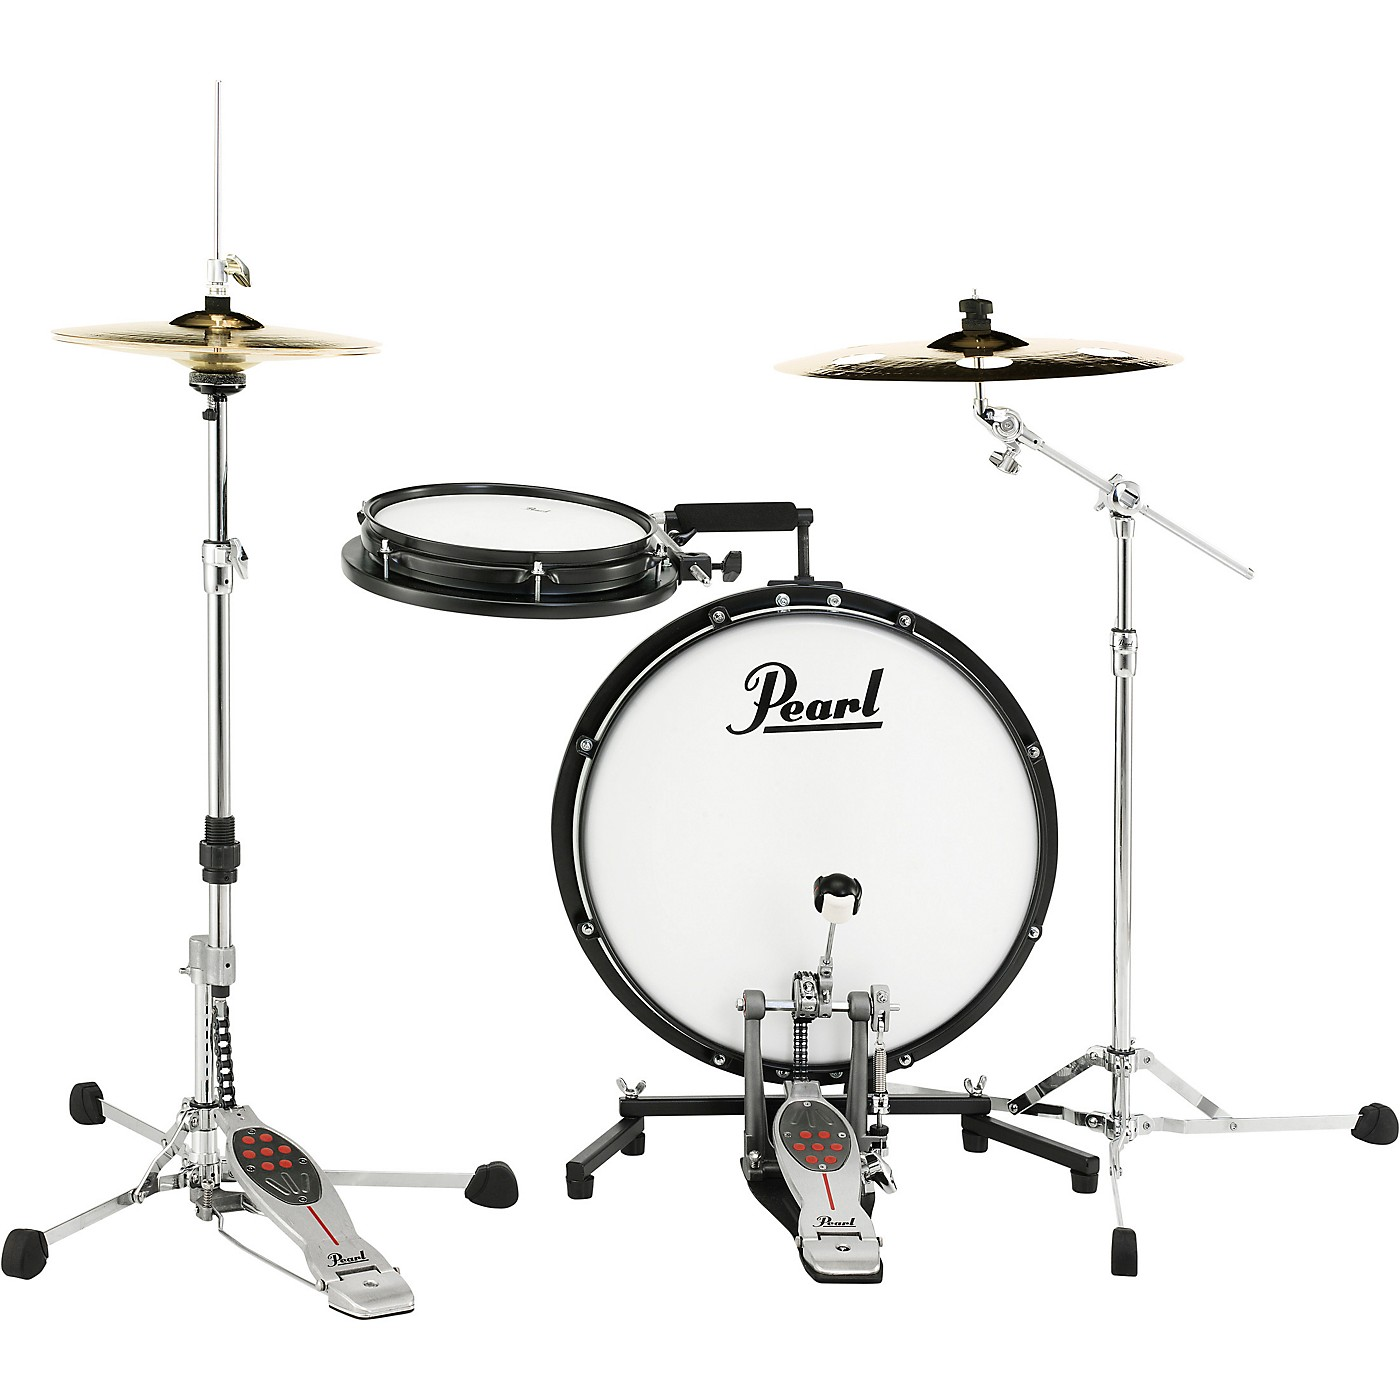 Pearl Compact Traveler 2-Piece Drum Kit thumbnail